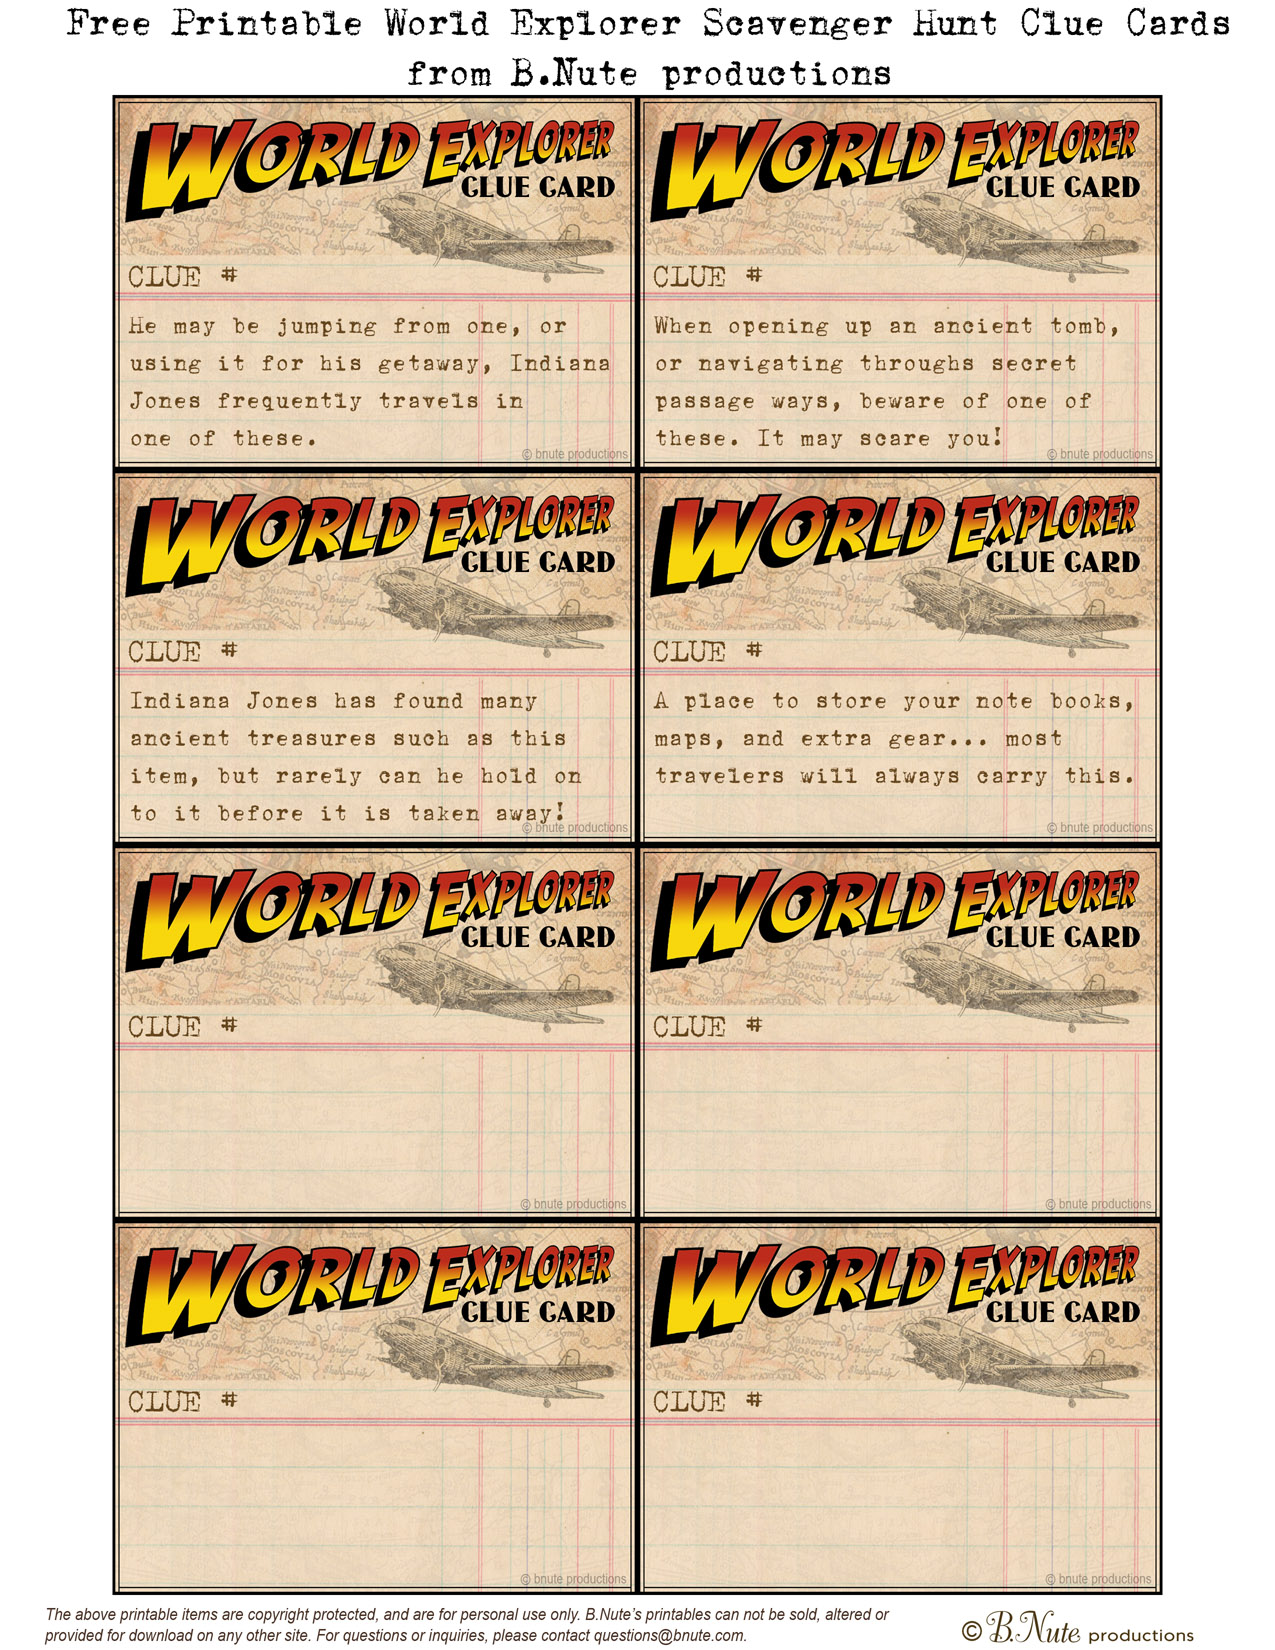 Bnute Productions Free Printable World Explorer Indiana Jones Scavenger Hunt Game